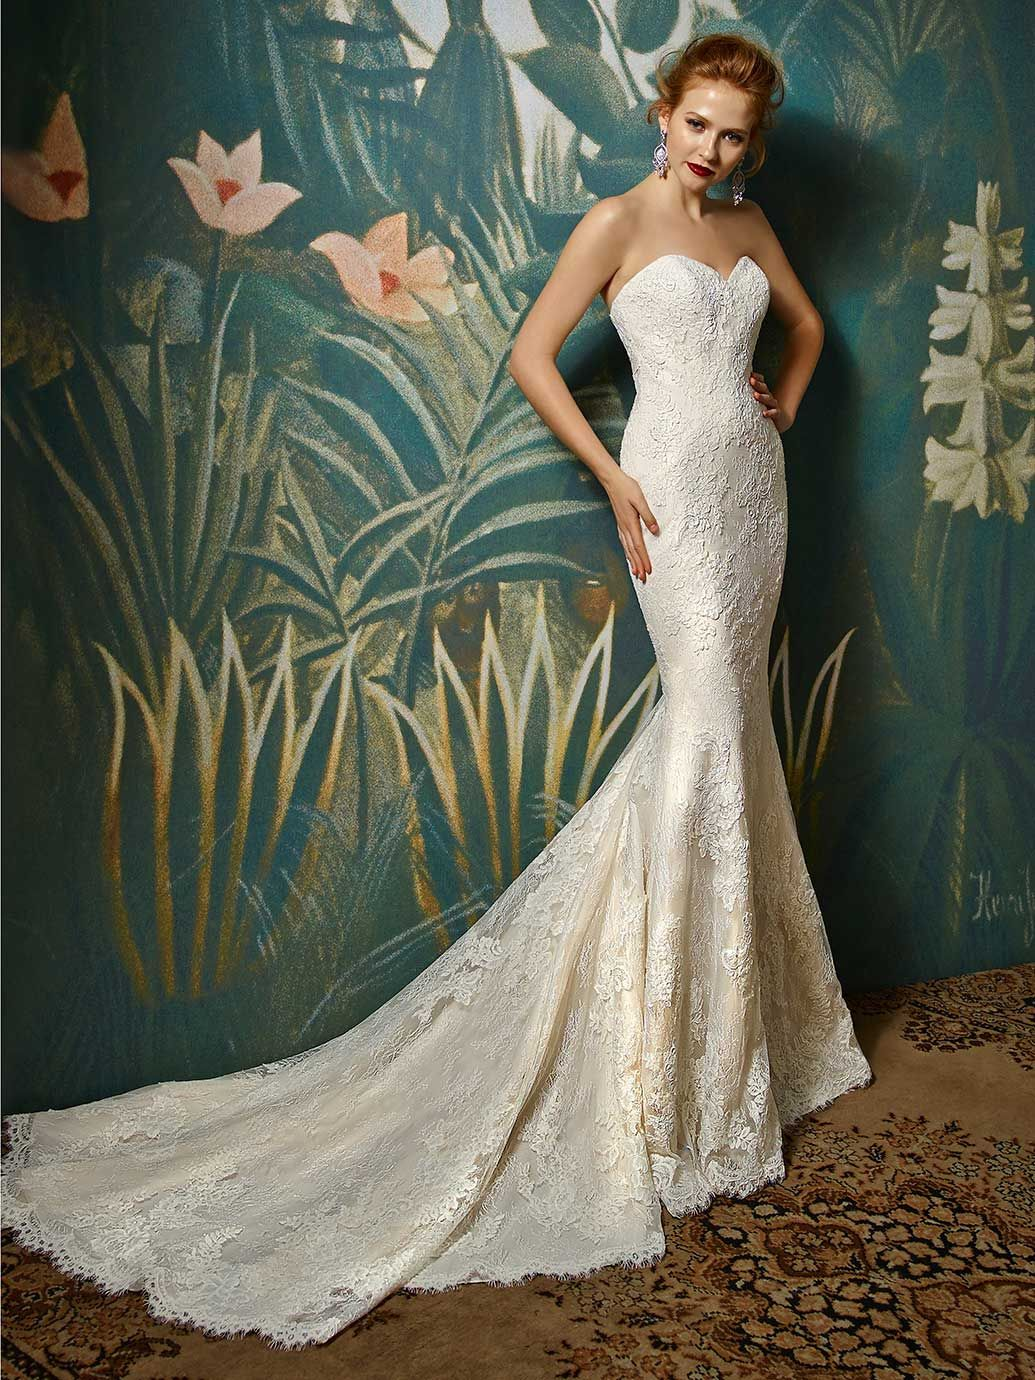 Silhouette wedding dresses simple bridal  A classic silhouette a timeless favorite  this fulllength